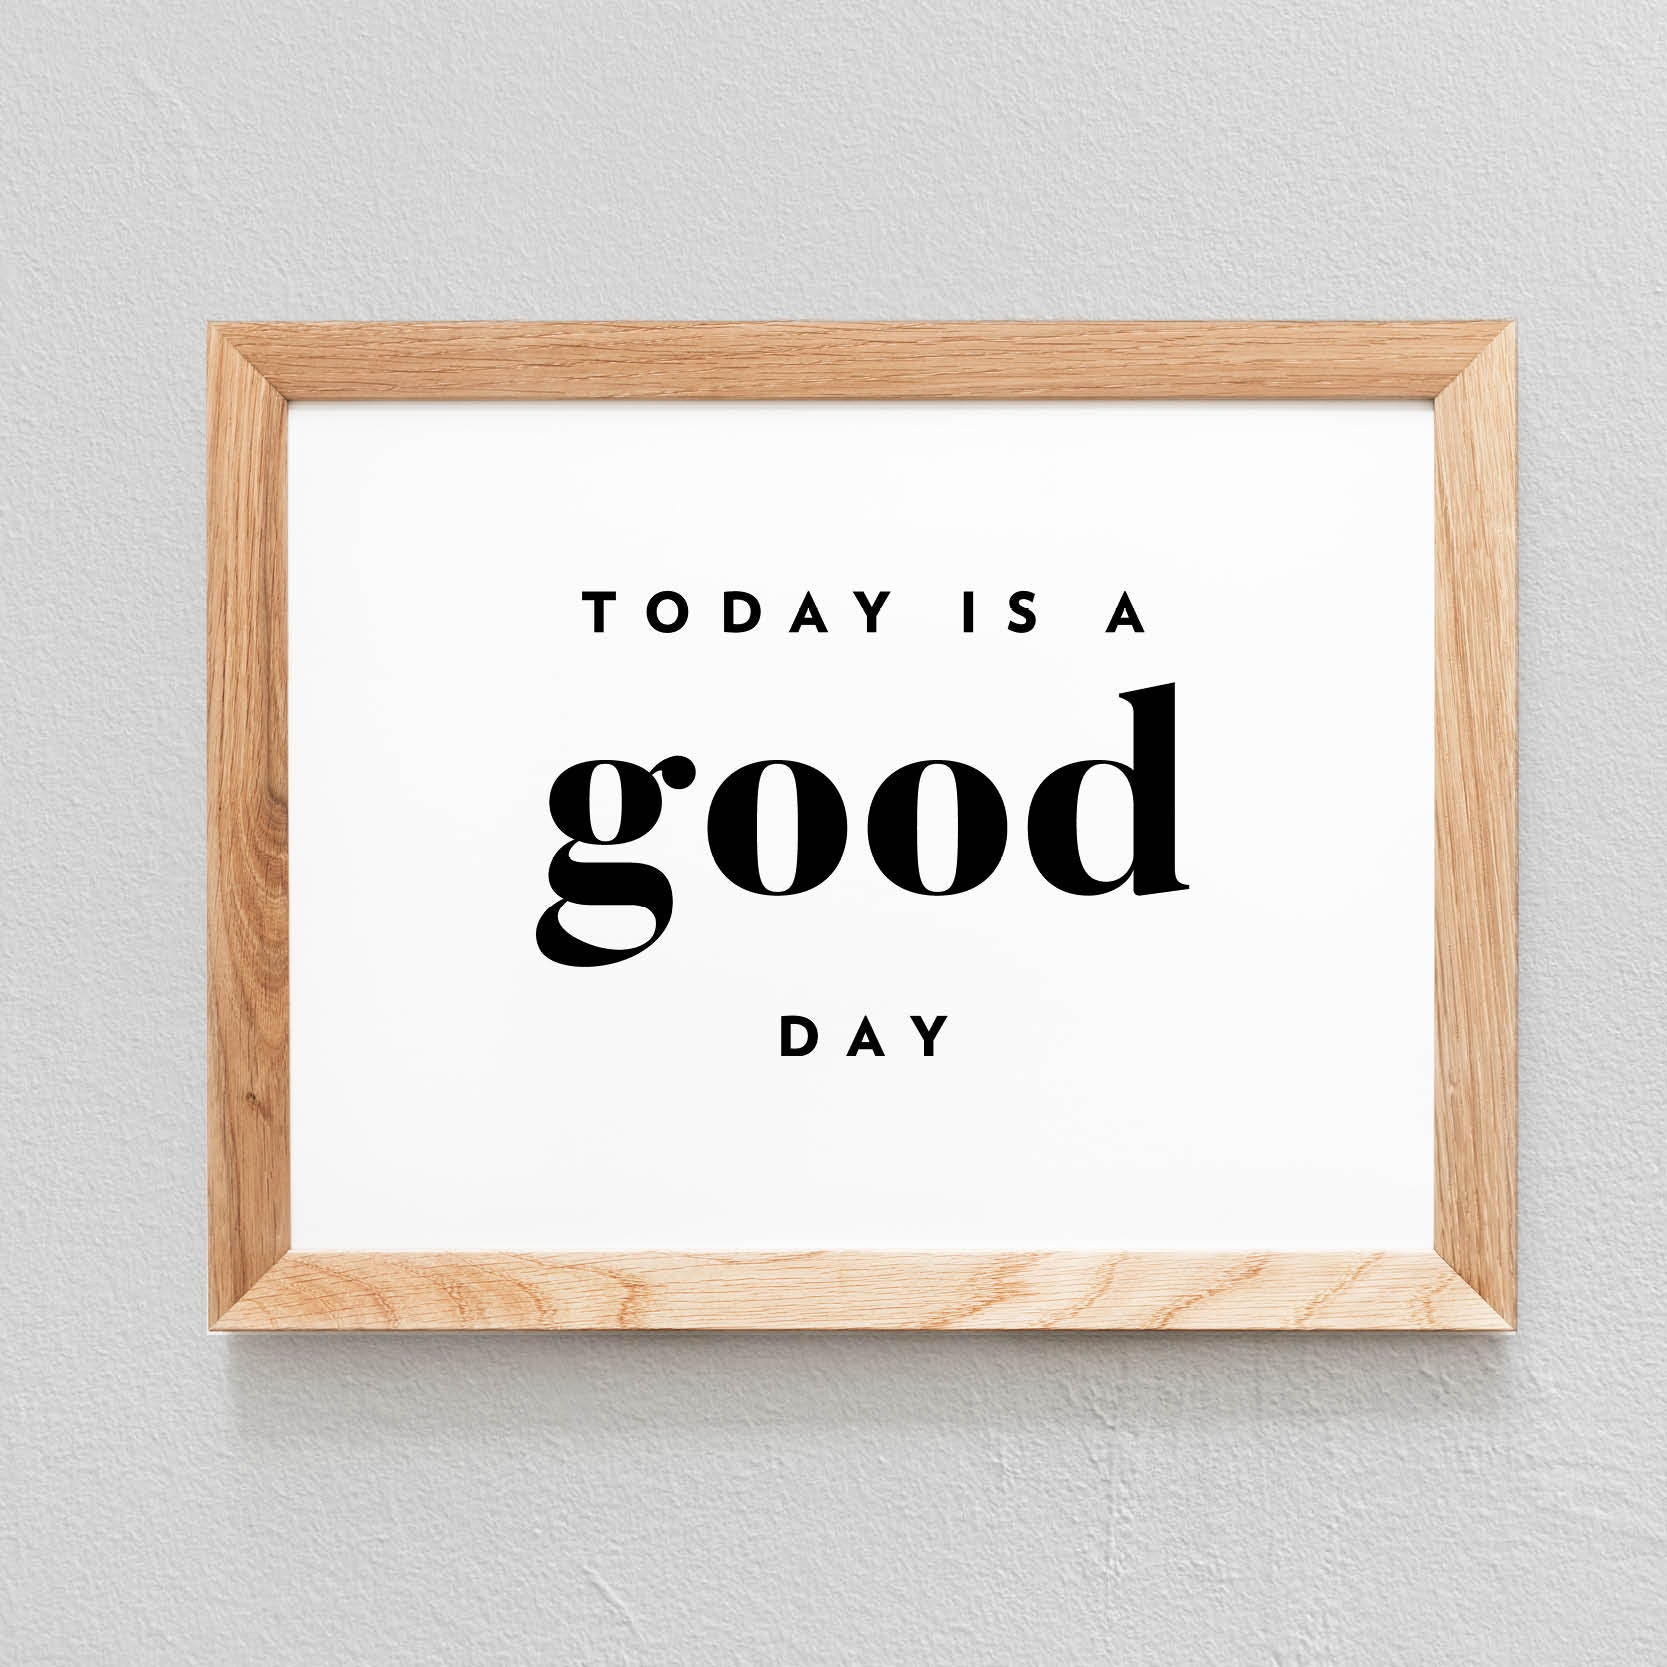 POSTER 'TODAY IS A GOOD DAY' - SEVEN PAPER